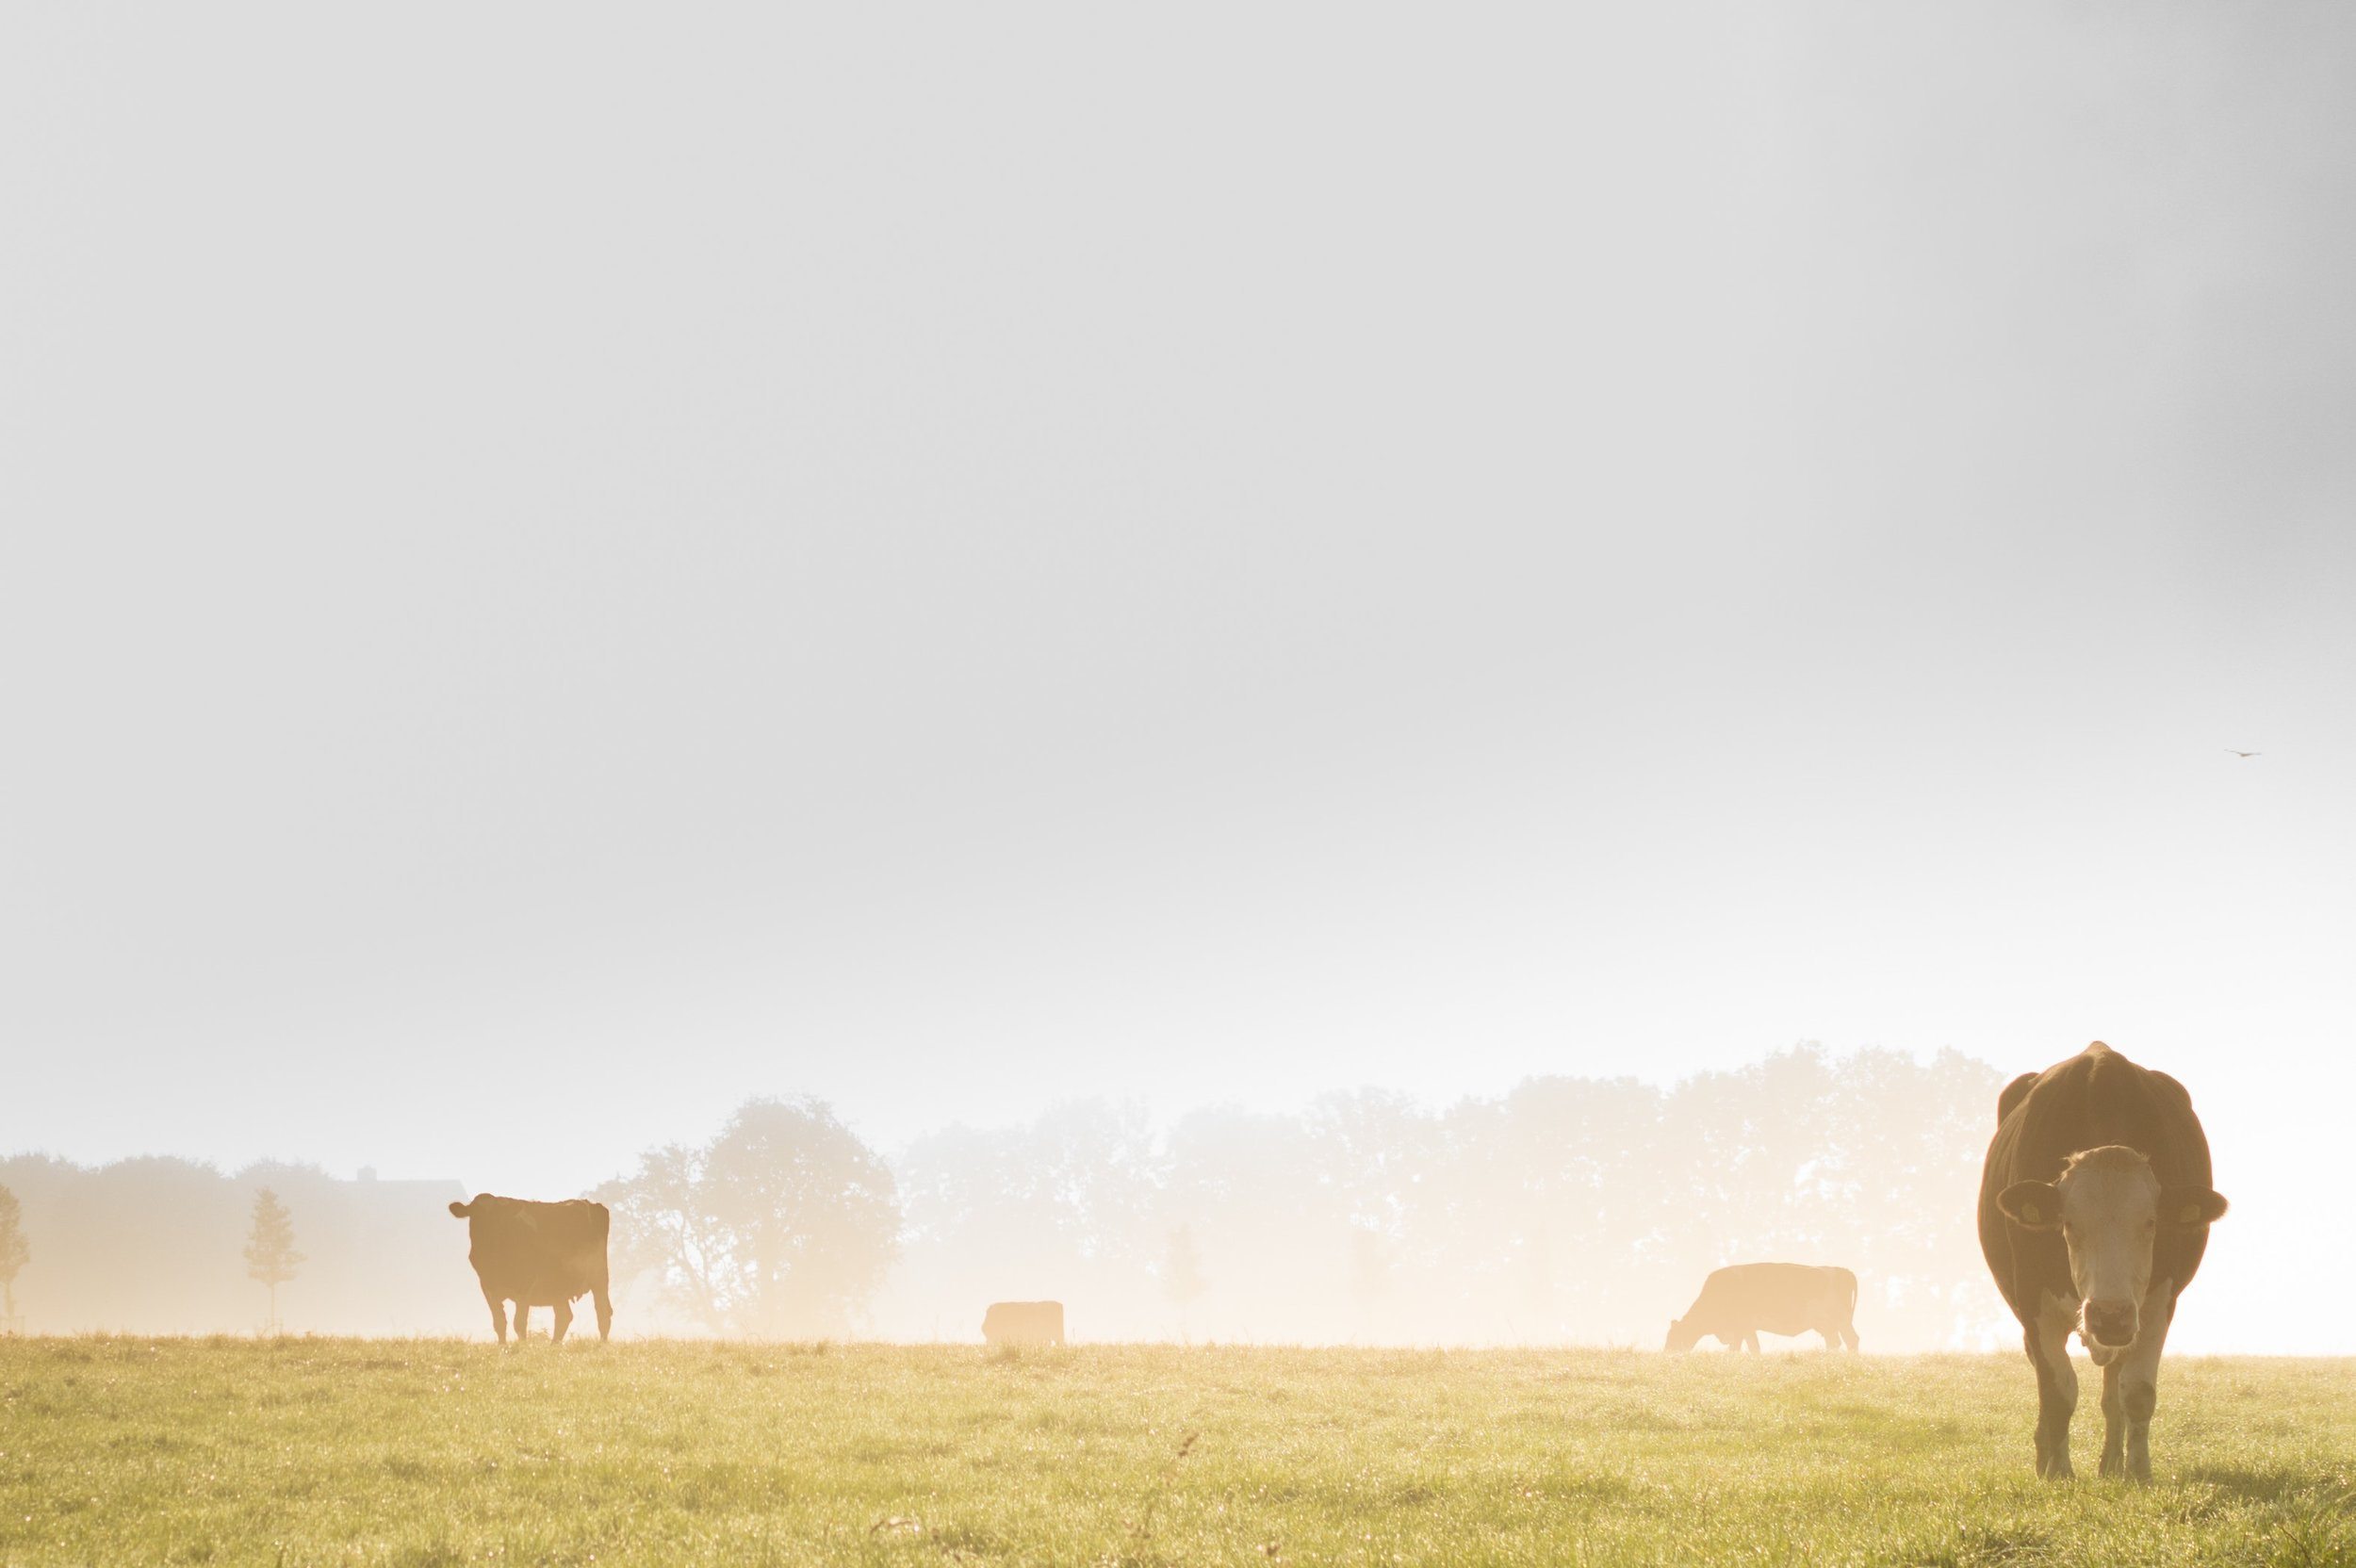 agriculture-animals-cows-9741.jpg